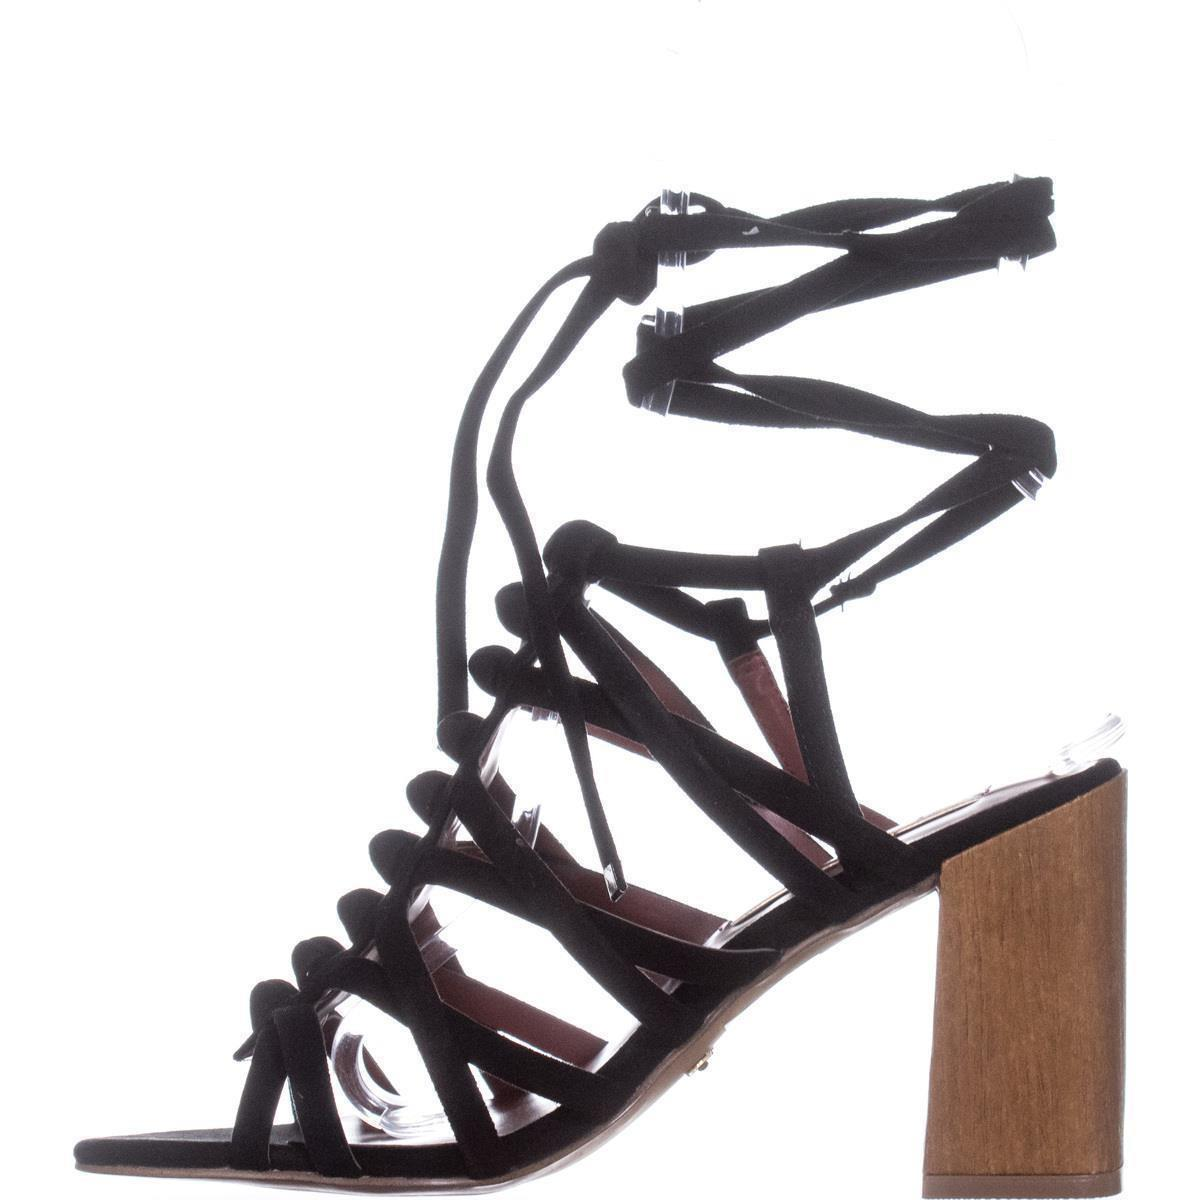 Lyst - Kensie Sadira Heeled Gladiator Sandals in Black